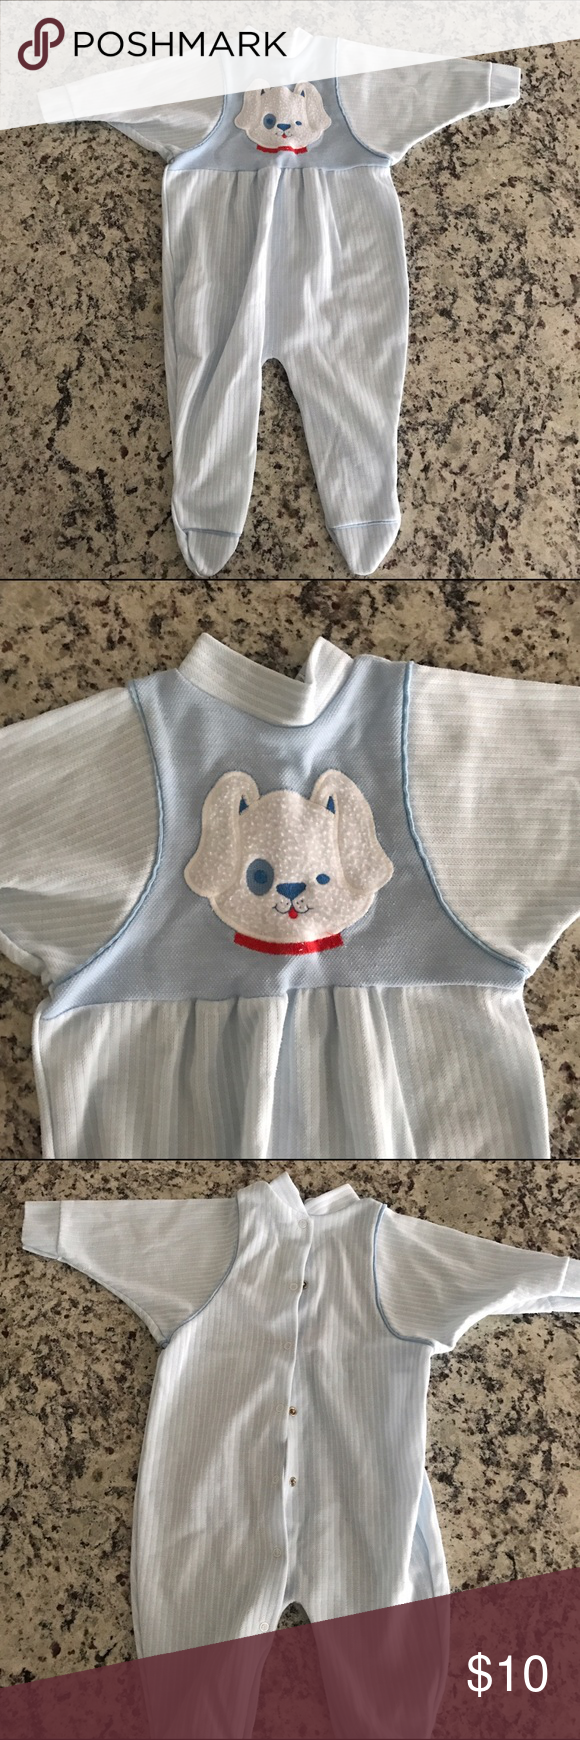 6-12mo Blue Footie One Piece with Puppy Adorable and warm footie one piece with fuzzy puppy dog. Buttons down back for easy change Gerber One Pieces Footies